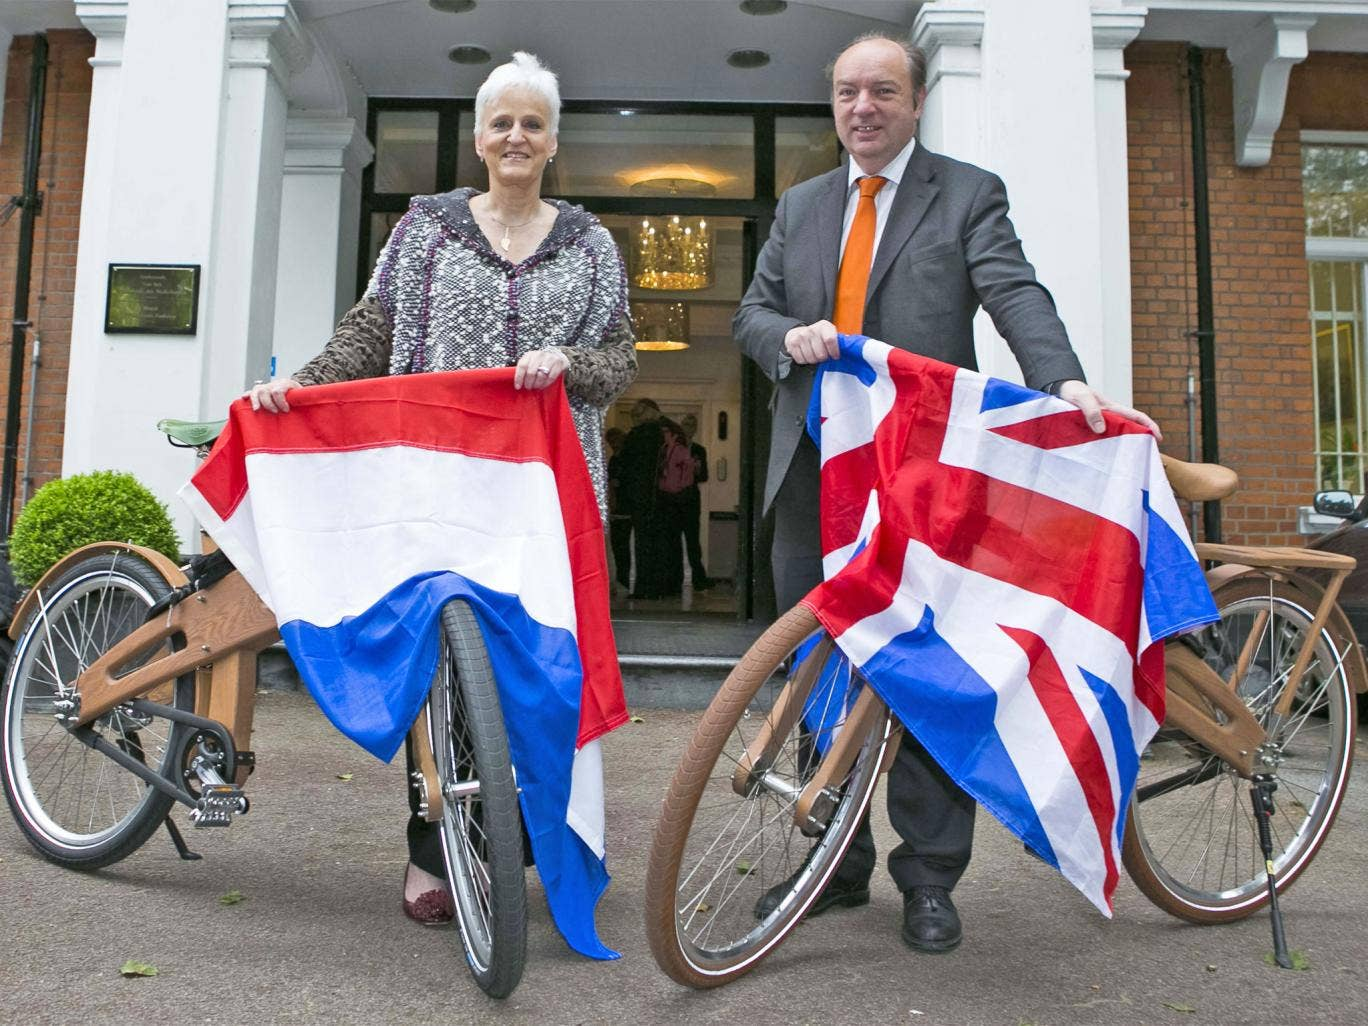 Laetitia van den Assum, Dutch Ambassador to the UK, with Norman Baker, Transport minister, on the fact-finding trip to the Netherlands